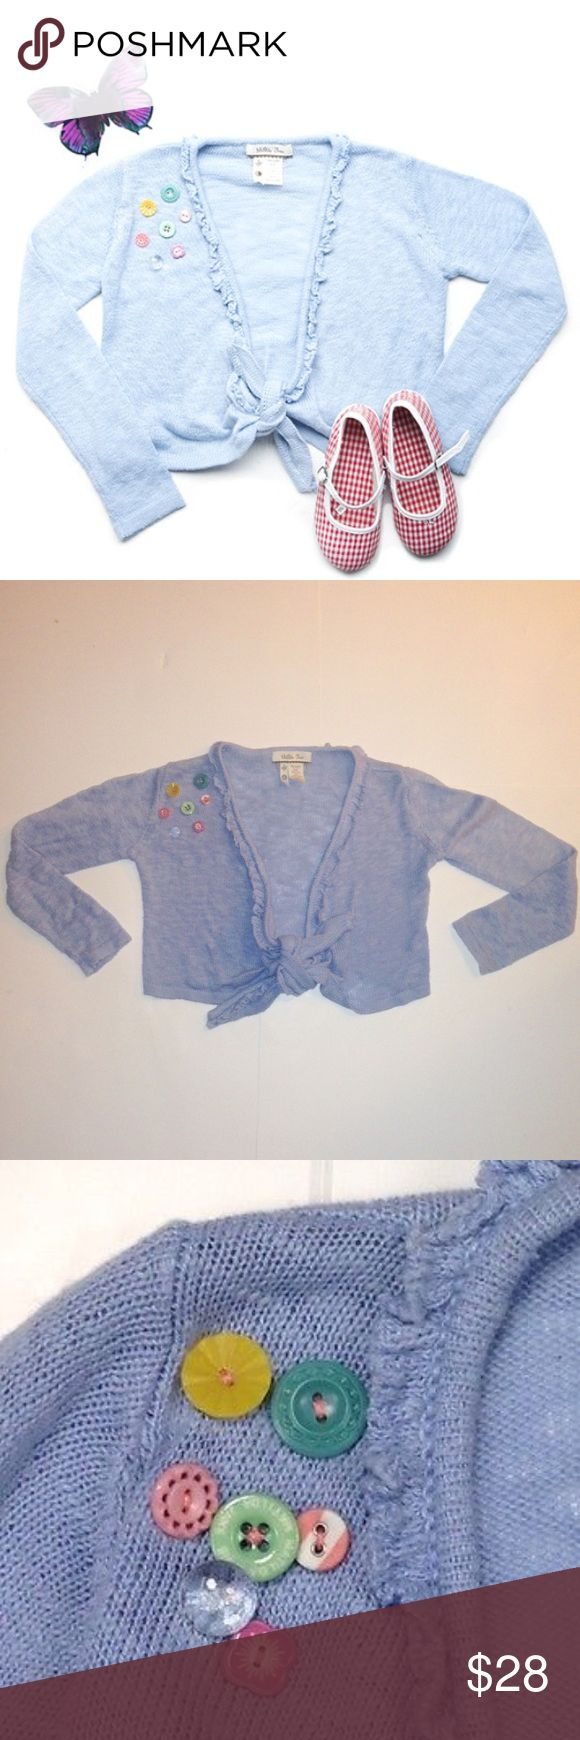 Matilda Jane Dandy Buttons Shrug Sweater Size 6 Happy to consider offers. Super Cute one-of-a-kind Matilda Jane Dandy Shrug Sweater from the It's A Wonderful Parade Collection. Excellent condition. Only worn one or two times times. Smoke-free as well as pet-free home. Size 6. Matilda Jane  Shirts & Tops Sweaters